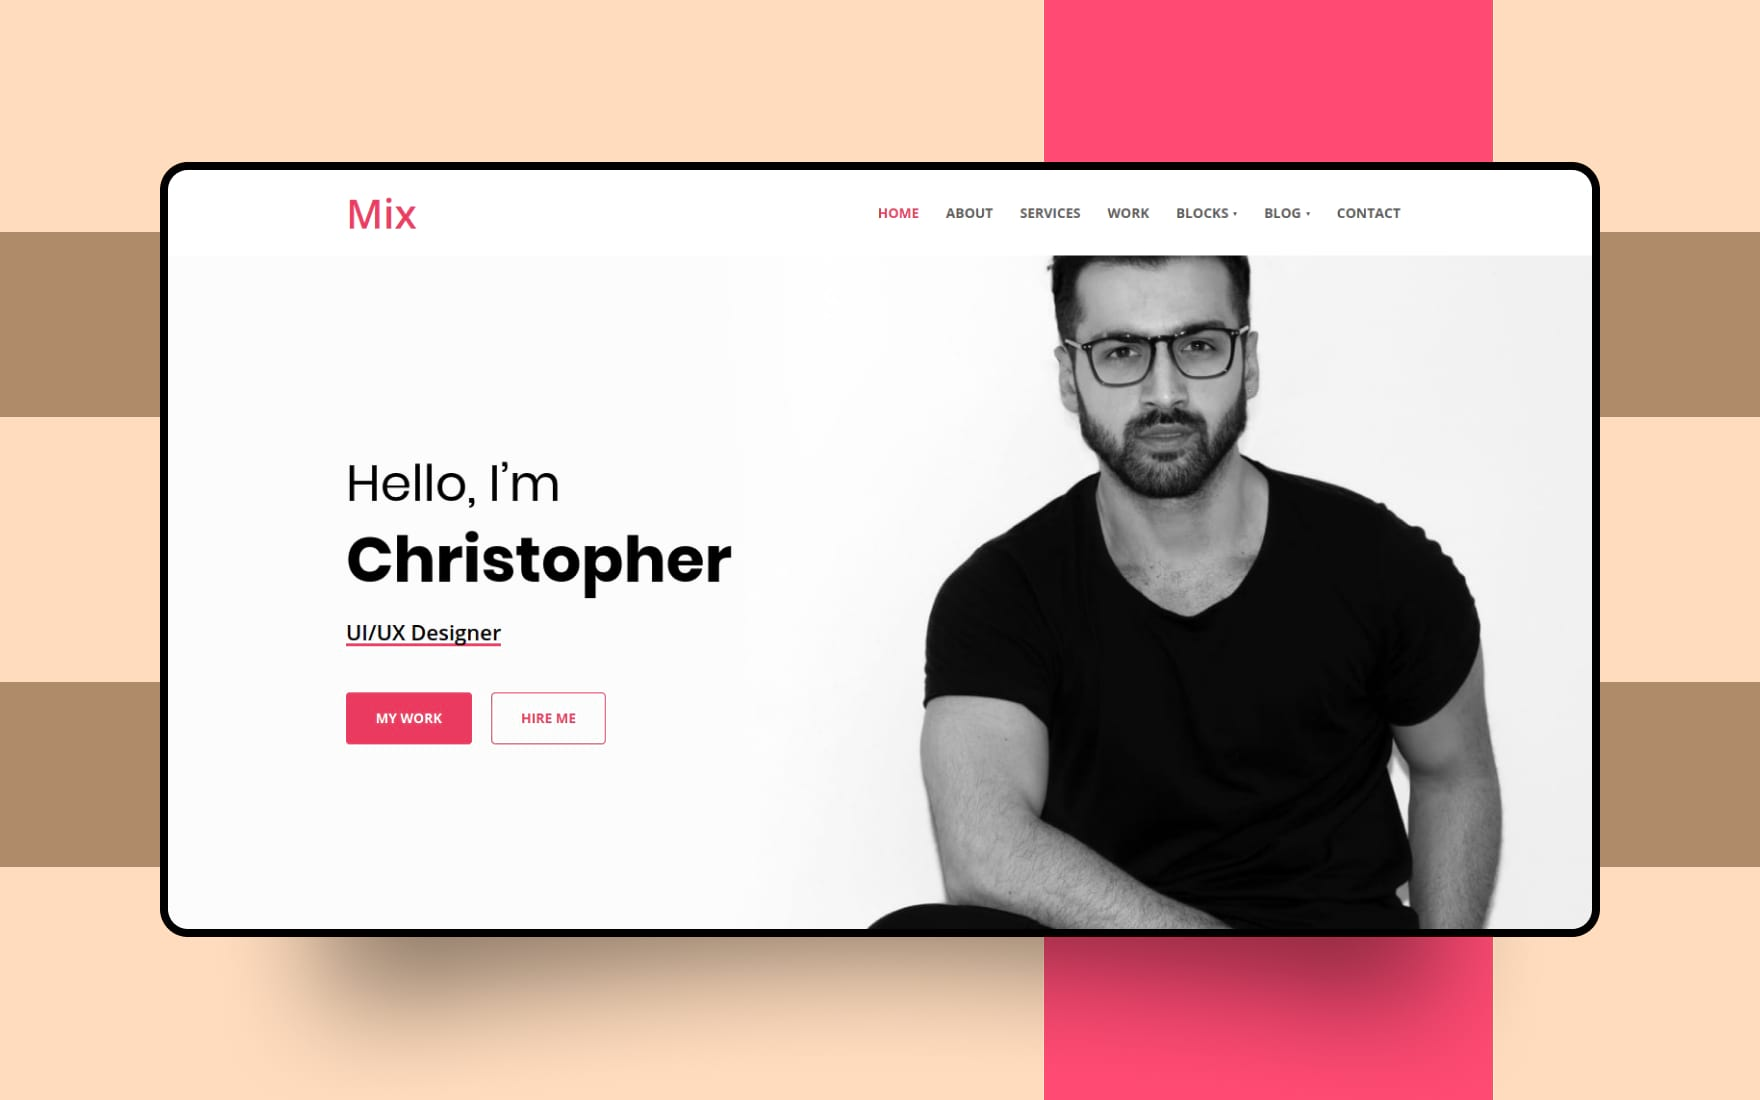 MIX Website Template